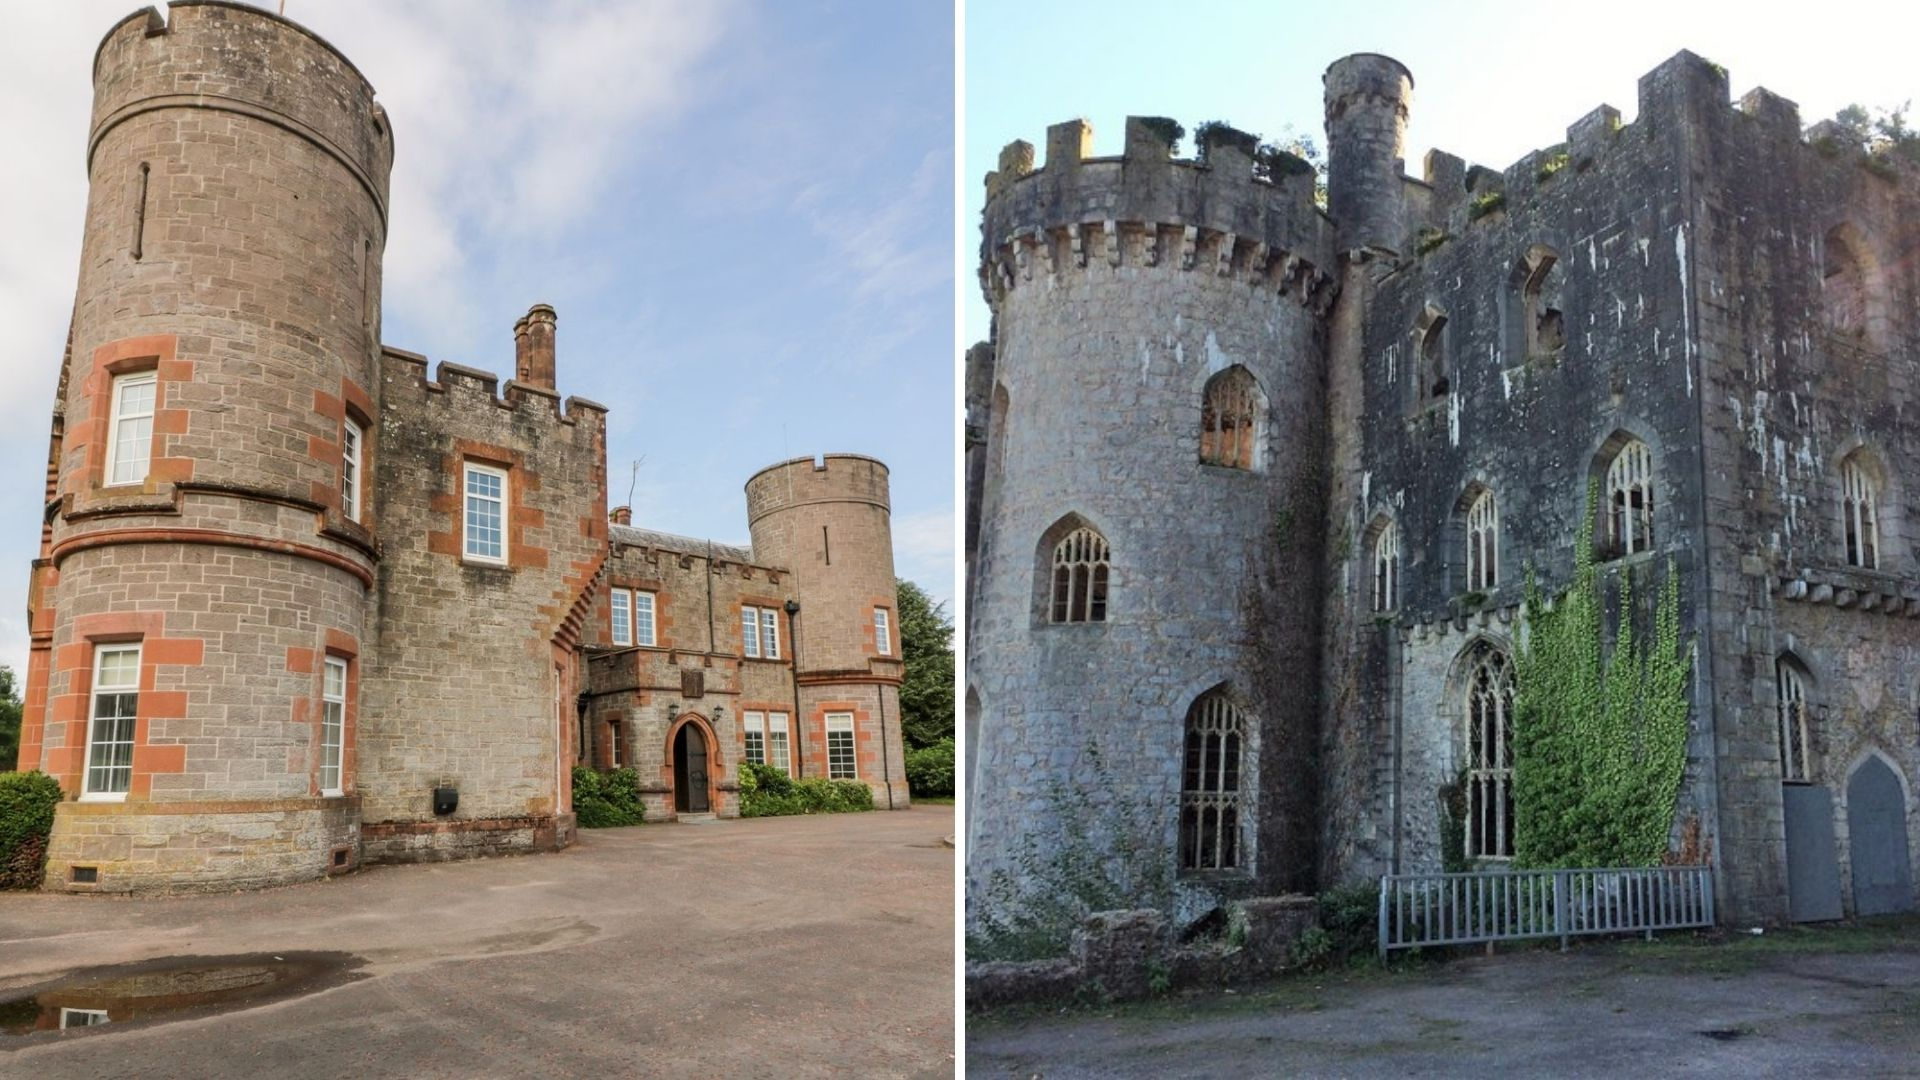 Auchentroig House and Gwrych Castle